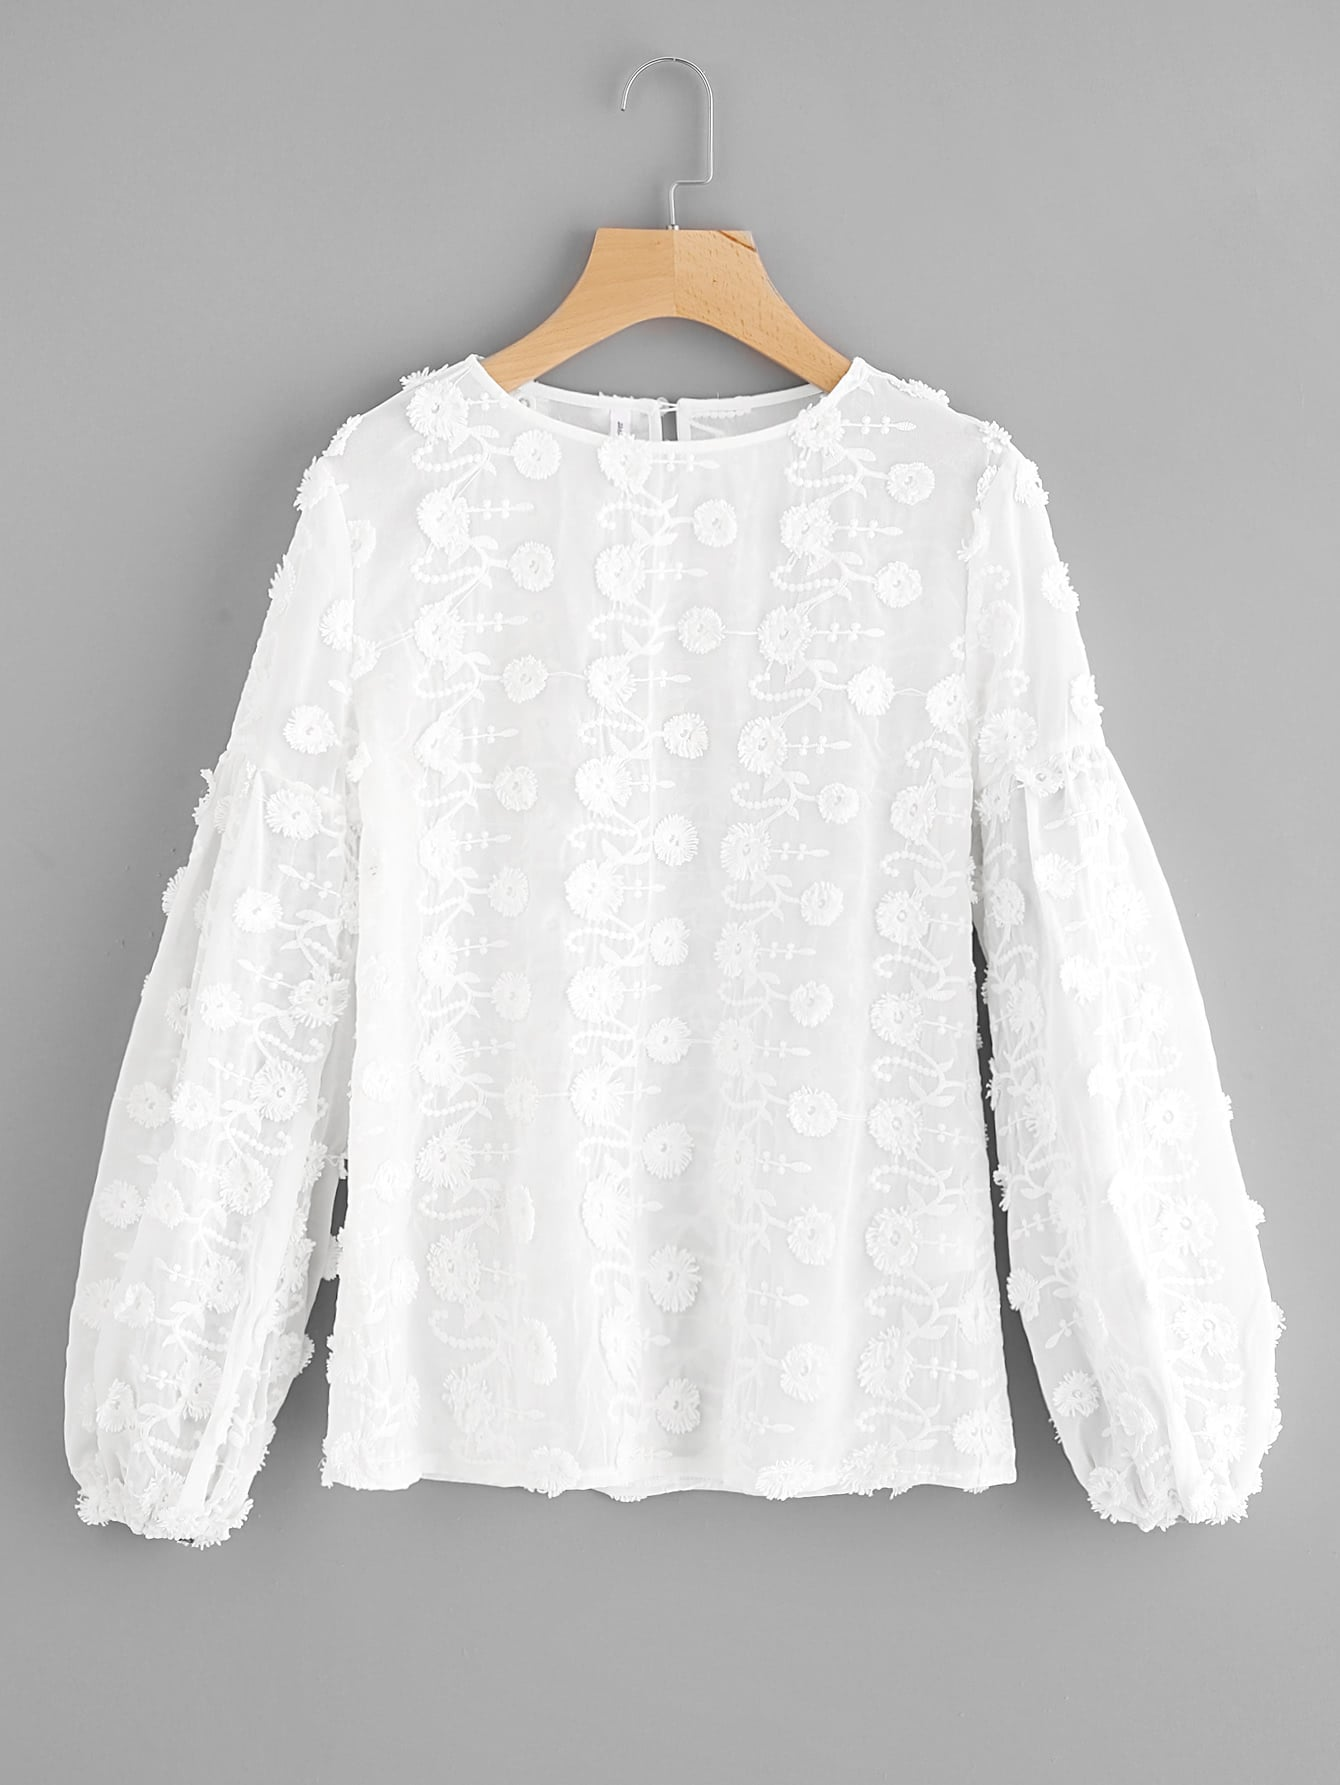 Buttoned Keyhole Flower Applique Embroidered Top buttoned keyhole back 2 in 1 embroidered mesh top